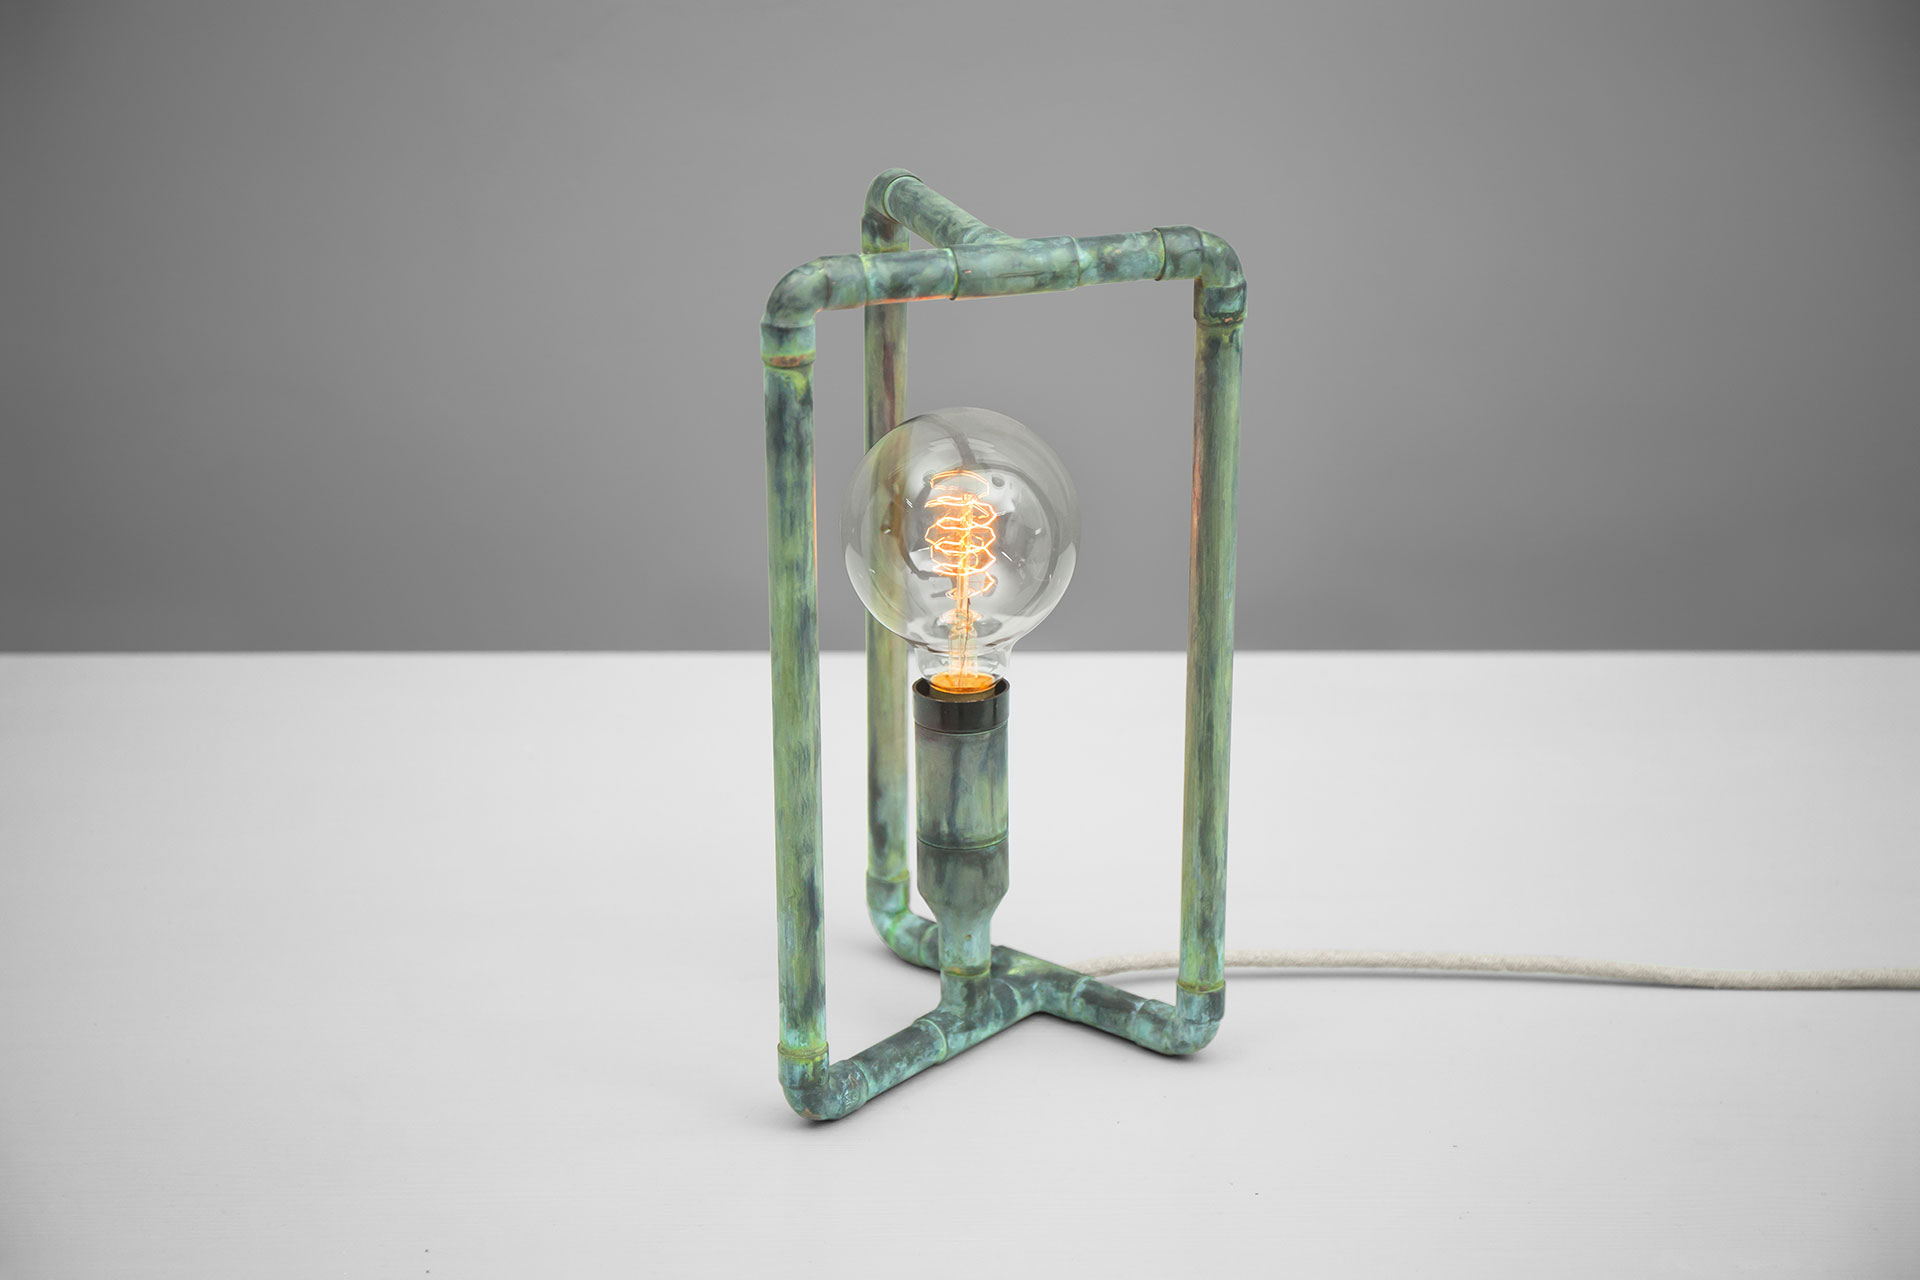 Conceptual design table lamp in handmade green patina metal finish with creative touch dimmer and retro bulb